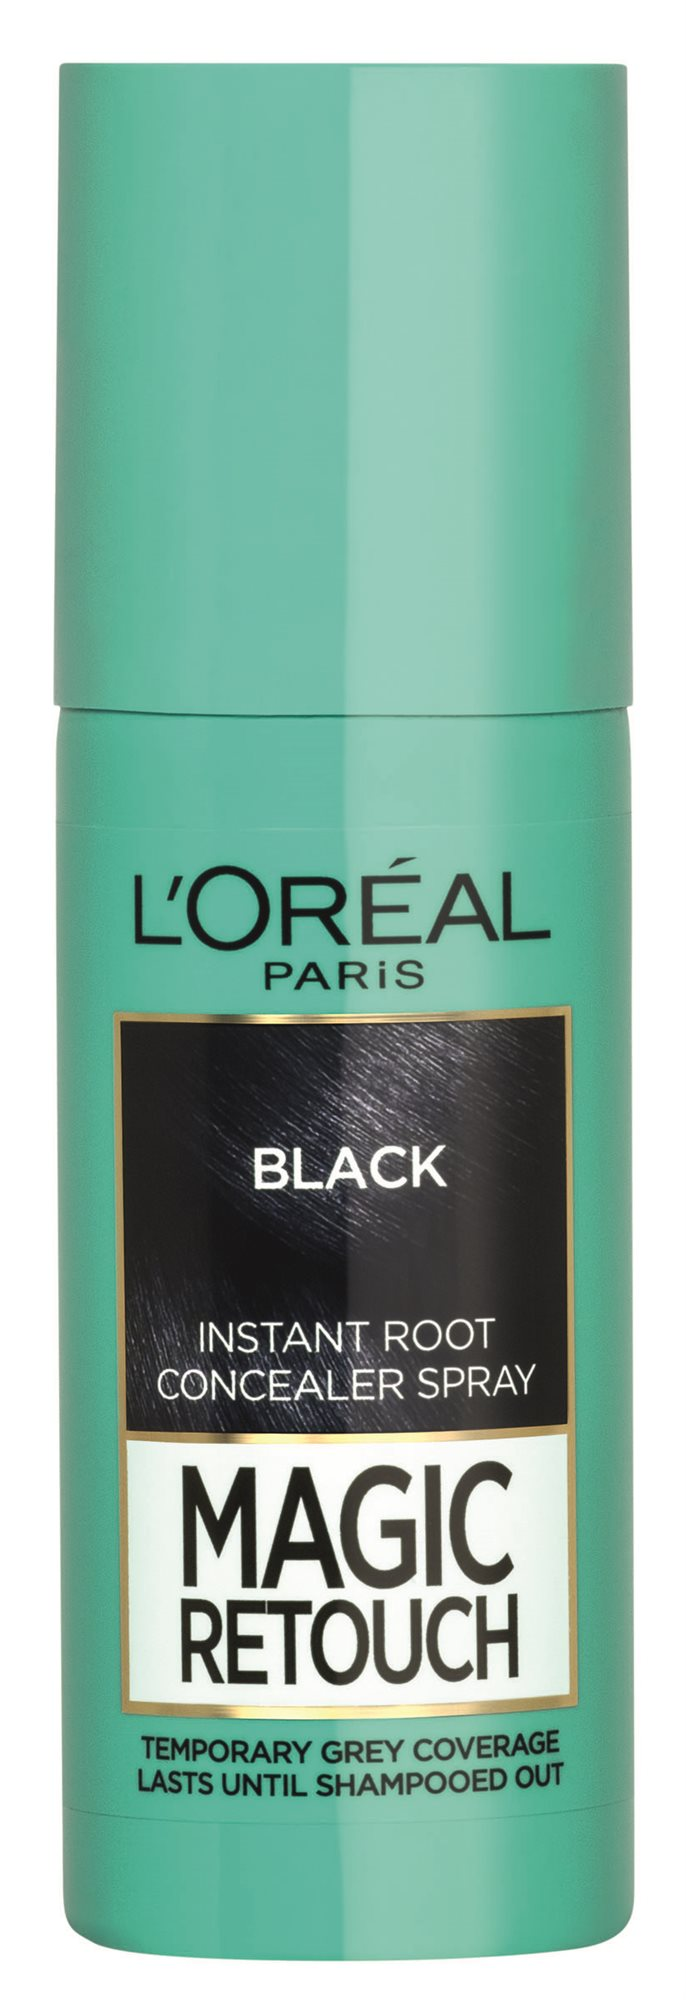 ĽORÉAL PARIS Magic Retouch 1 Black 75 ml